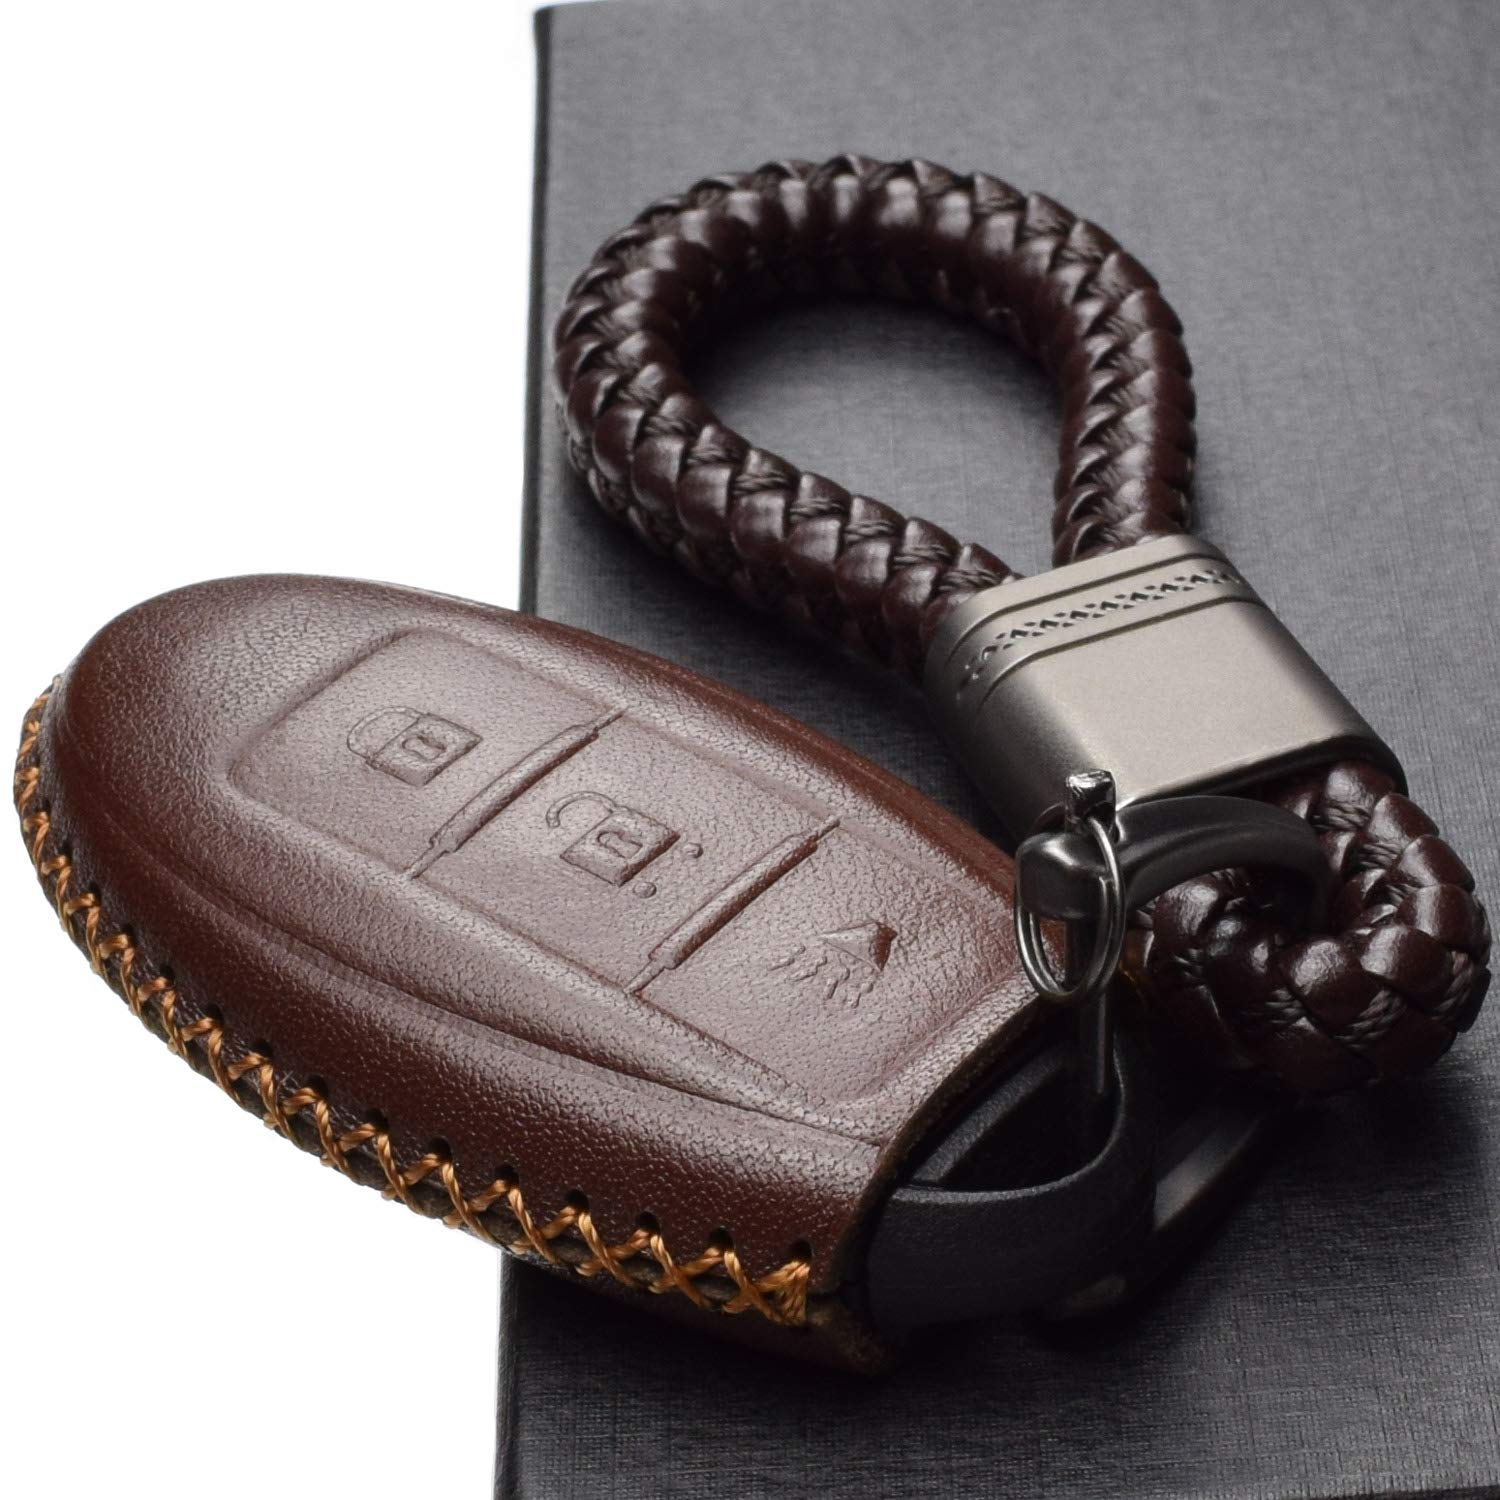 5 Buttons, Black Vitodeco Leather Keyless Entry Remote Control Smart Key Case Cover with a Key Chain for Nissan /& Infiniti